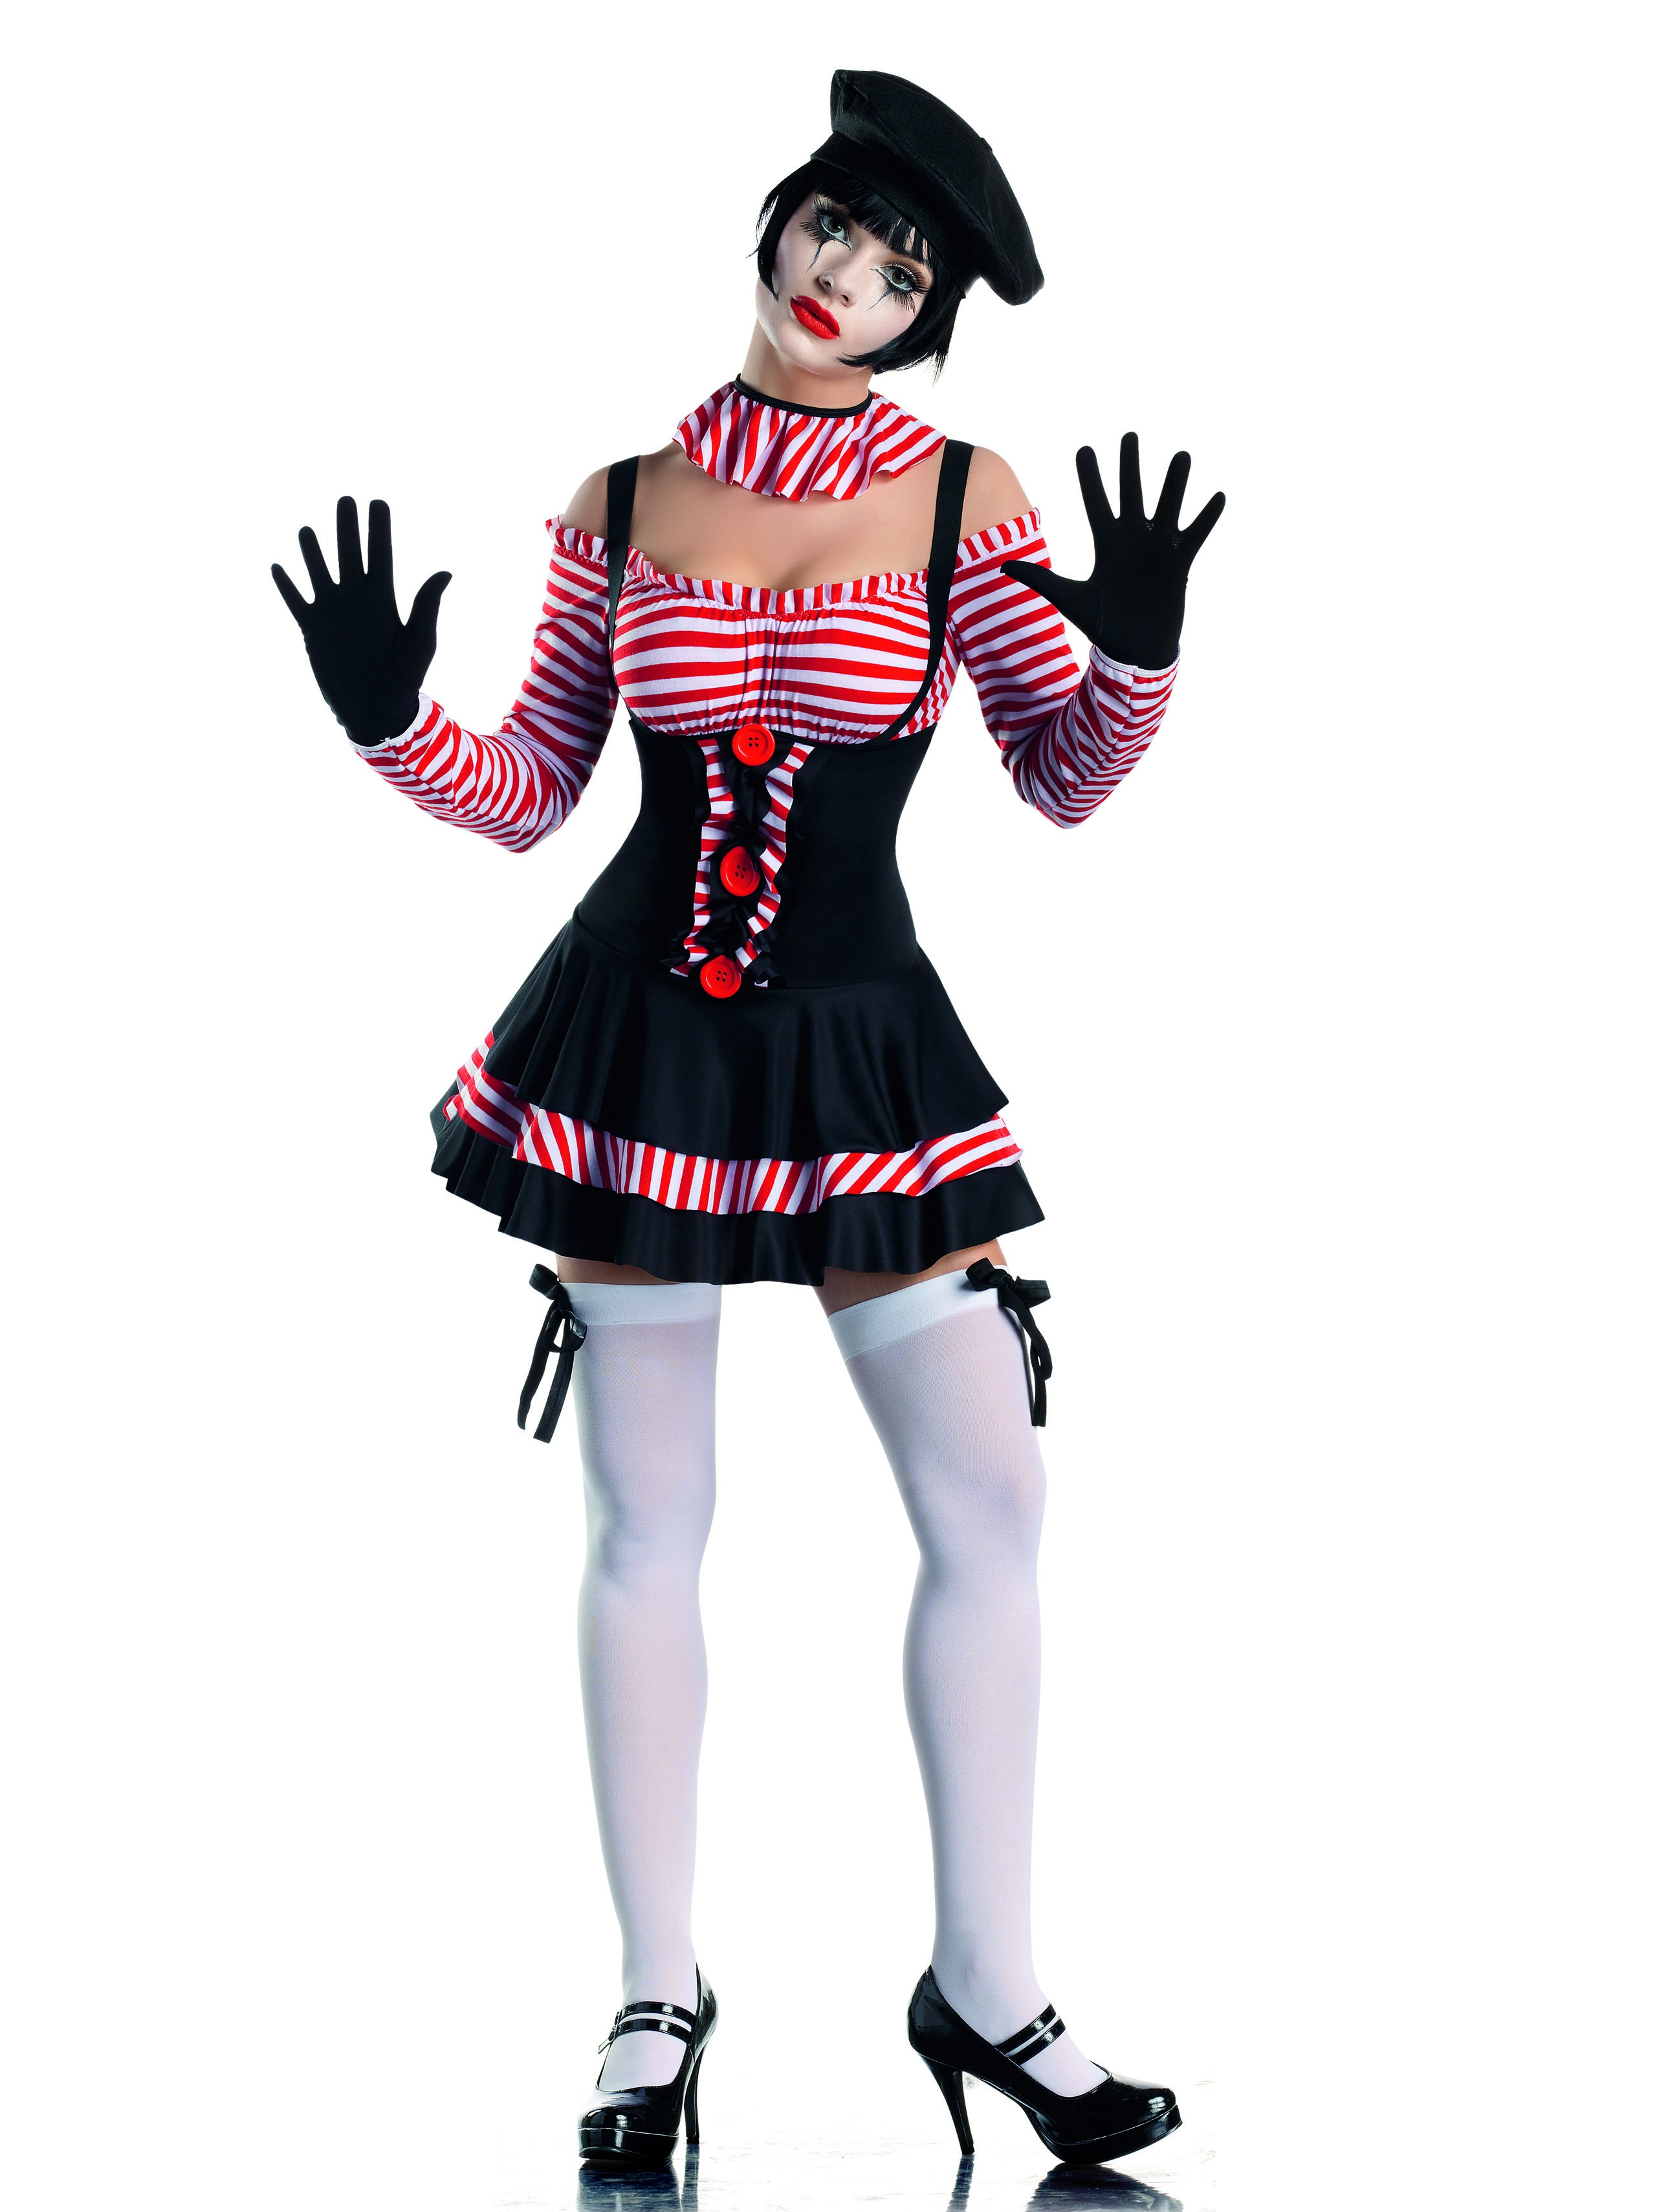 Sexy Circus Mime Costume - Mr. Costumes | 2595 x 3418 jpeg 3636kB